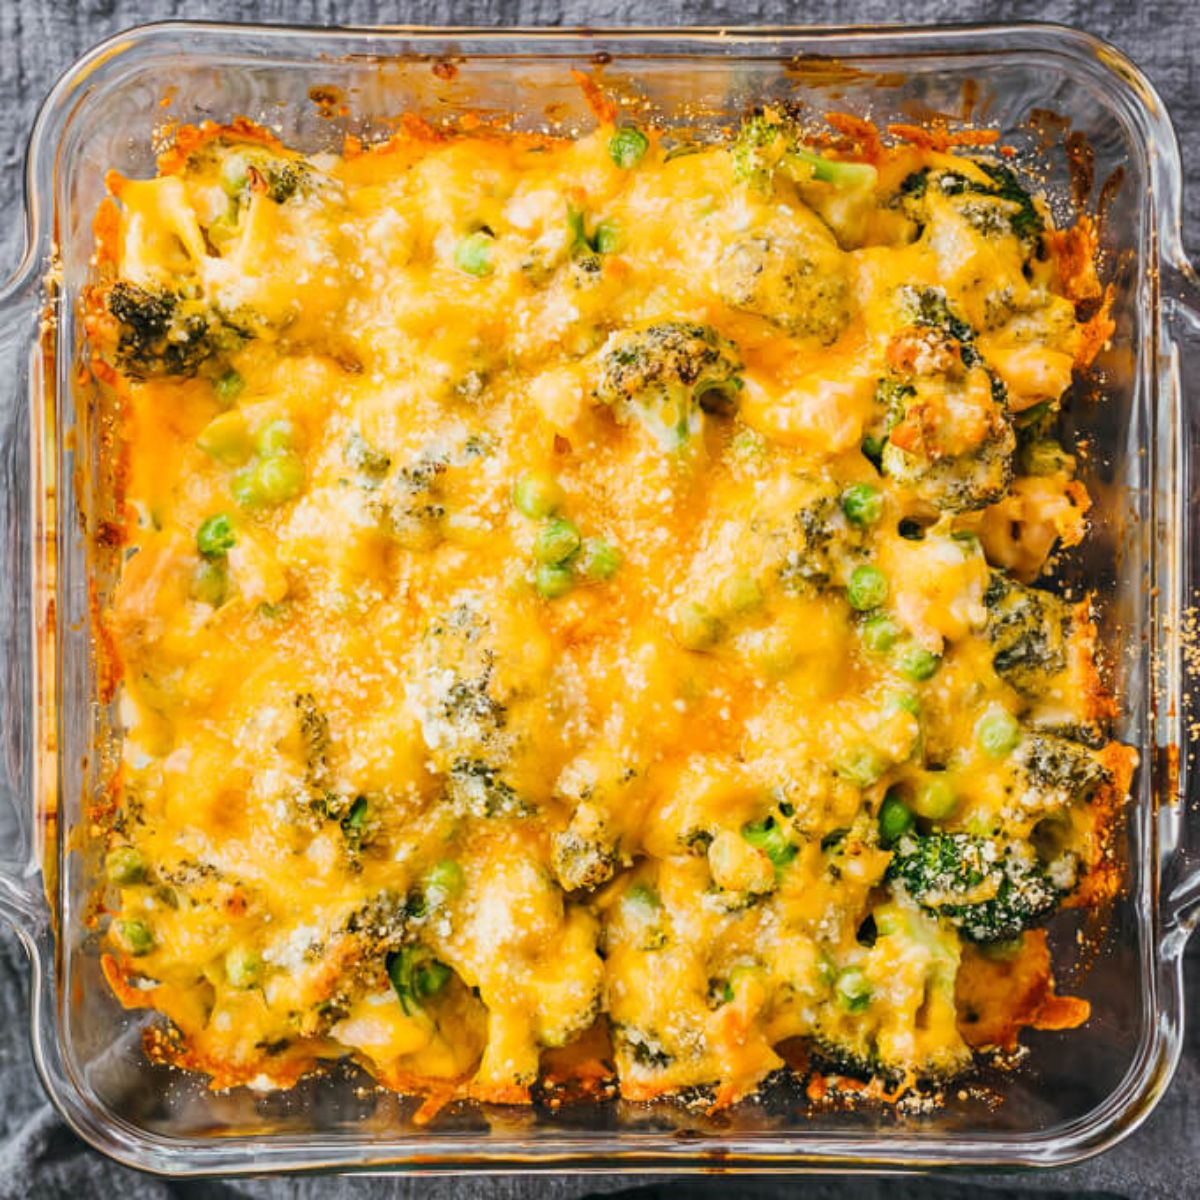 on a gray cloth is a square galss casserole dish filled with cheese-topped casserole. Peas and broccoli can just be seen